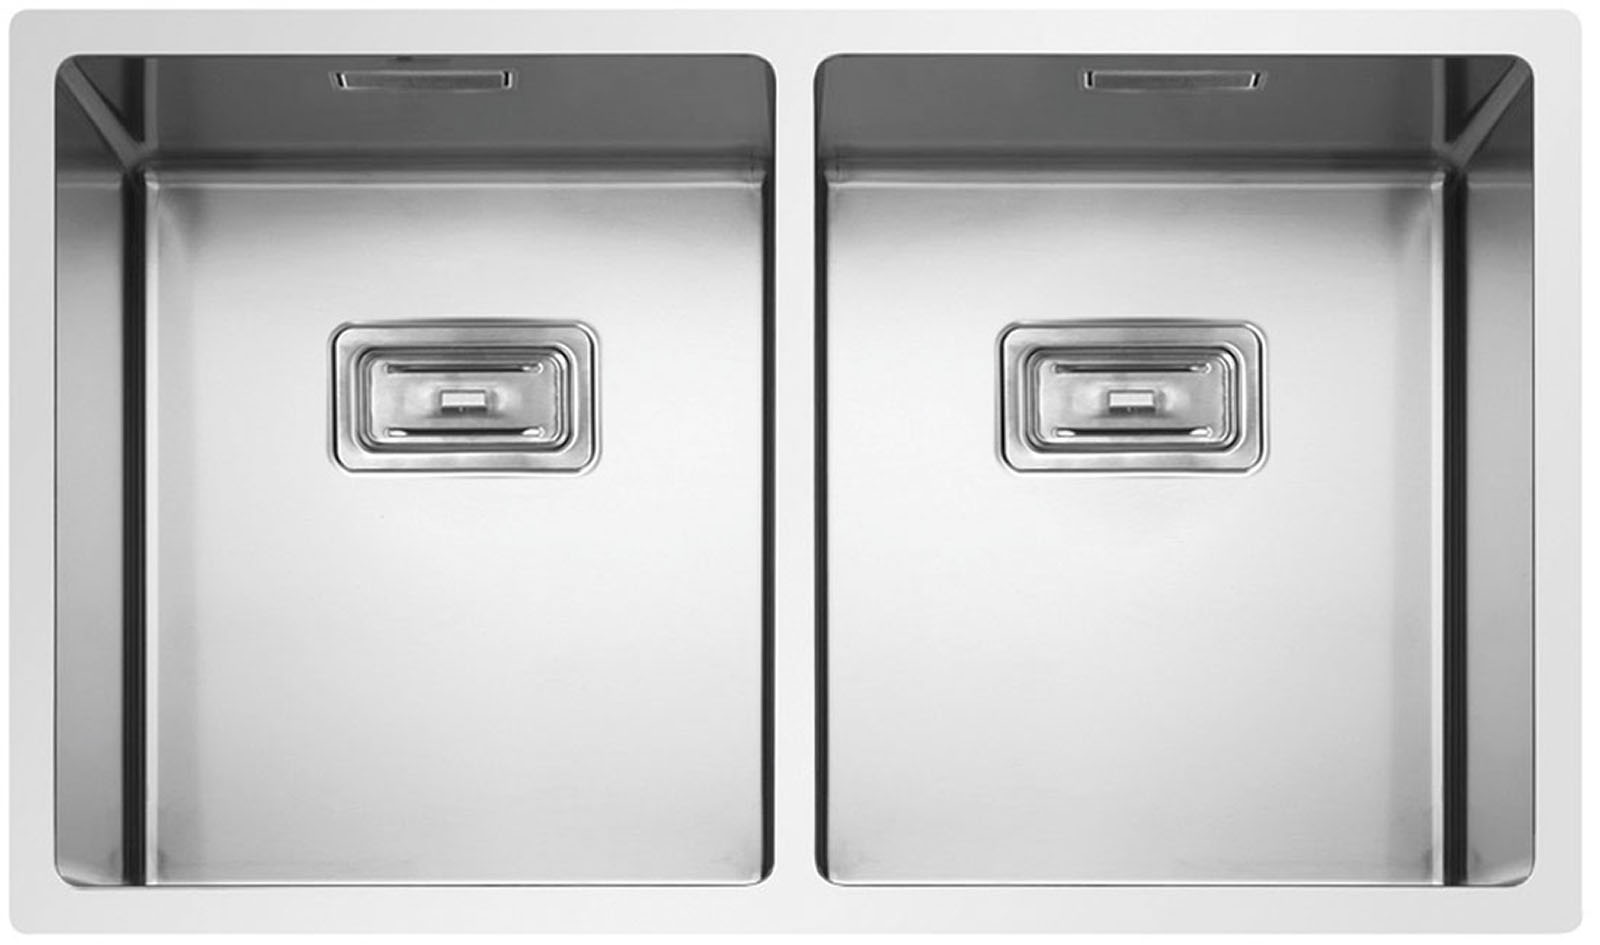 Sinks BOX 755 DUO FI 1,0mm